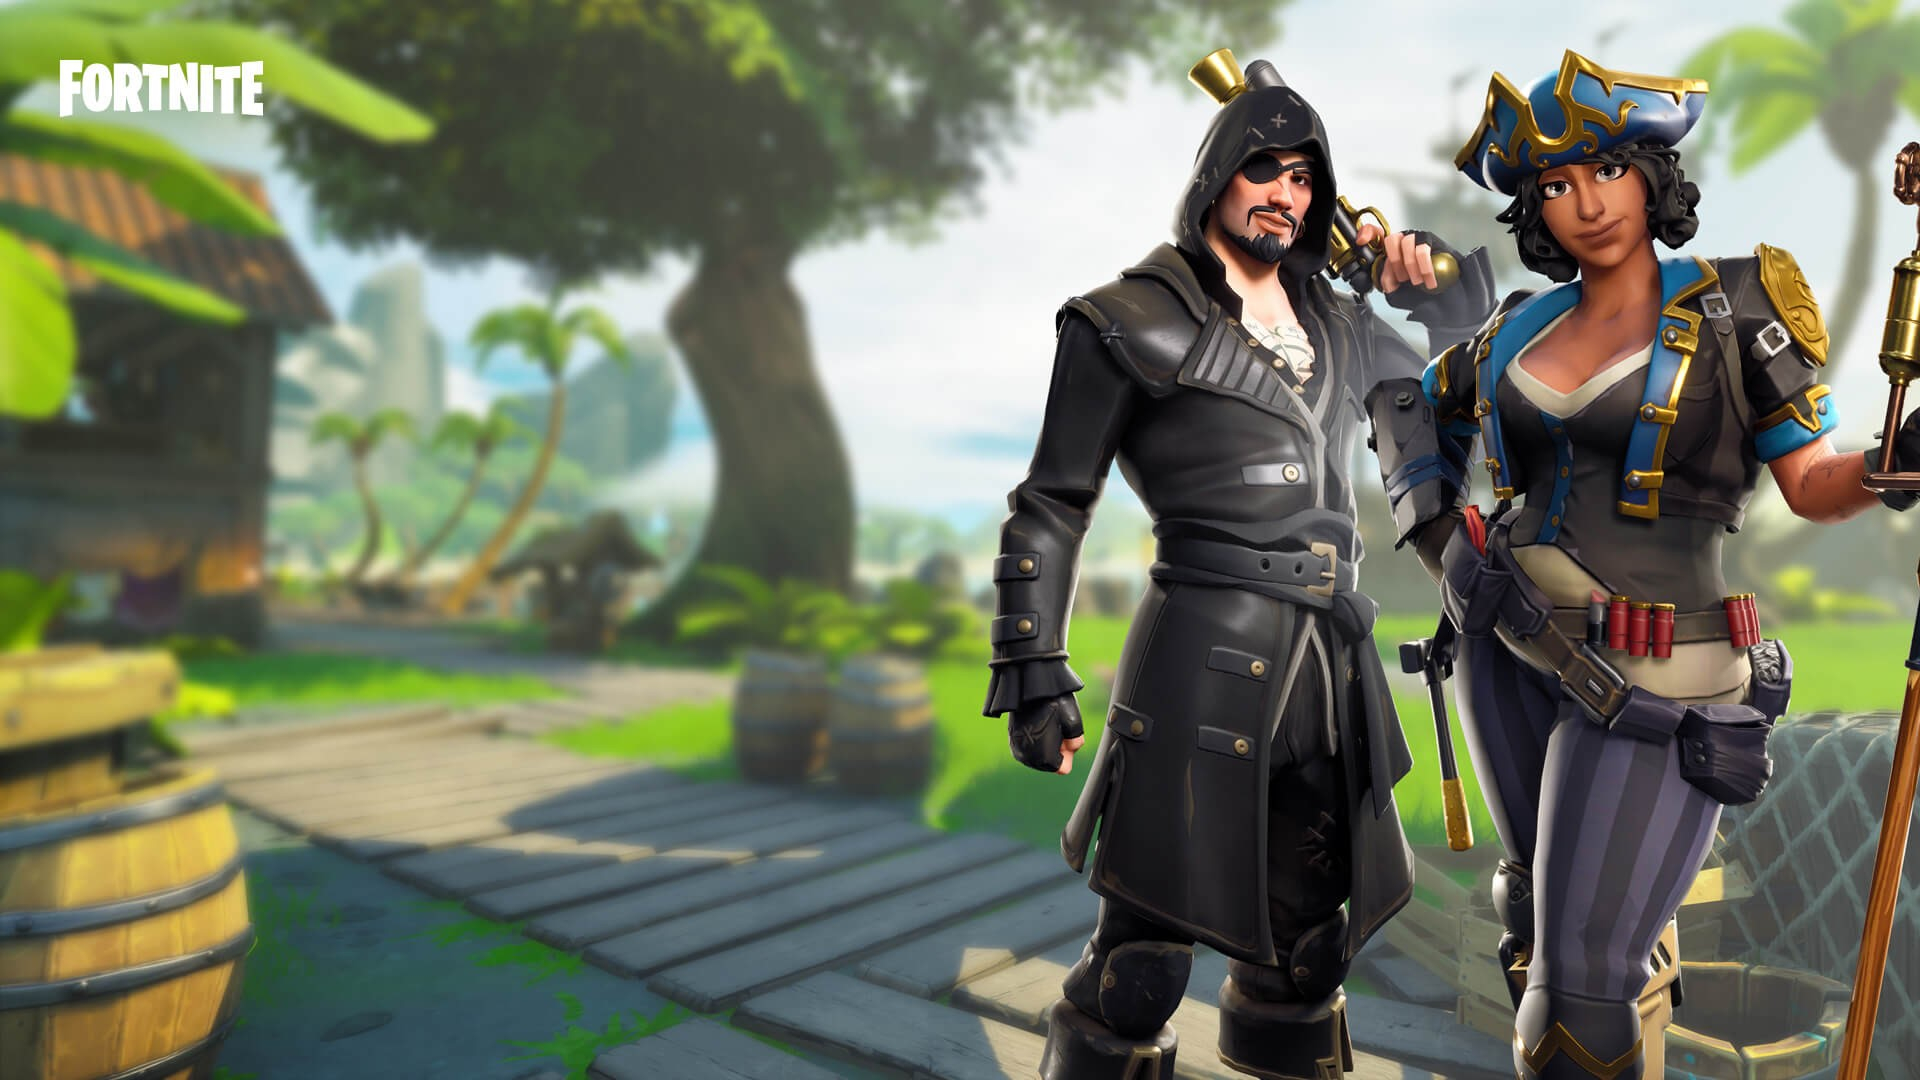 Fortnite Slow Showdown Check How Many Games Played Fortnite Save The World Exits Early Access And Remains Premium Experience